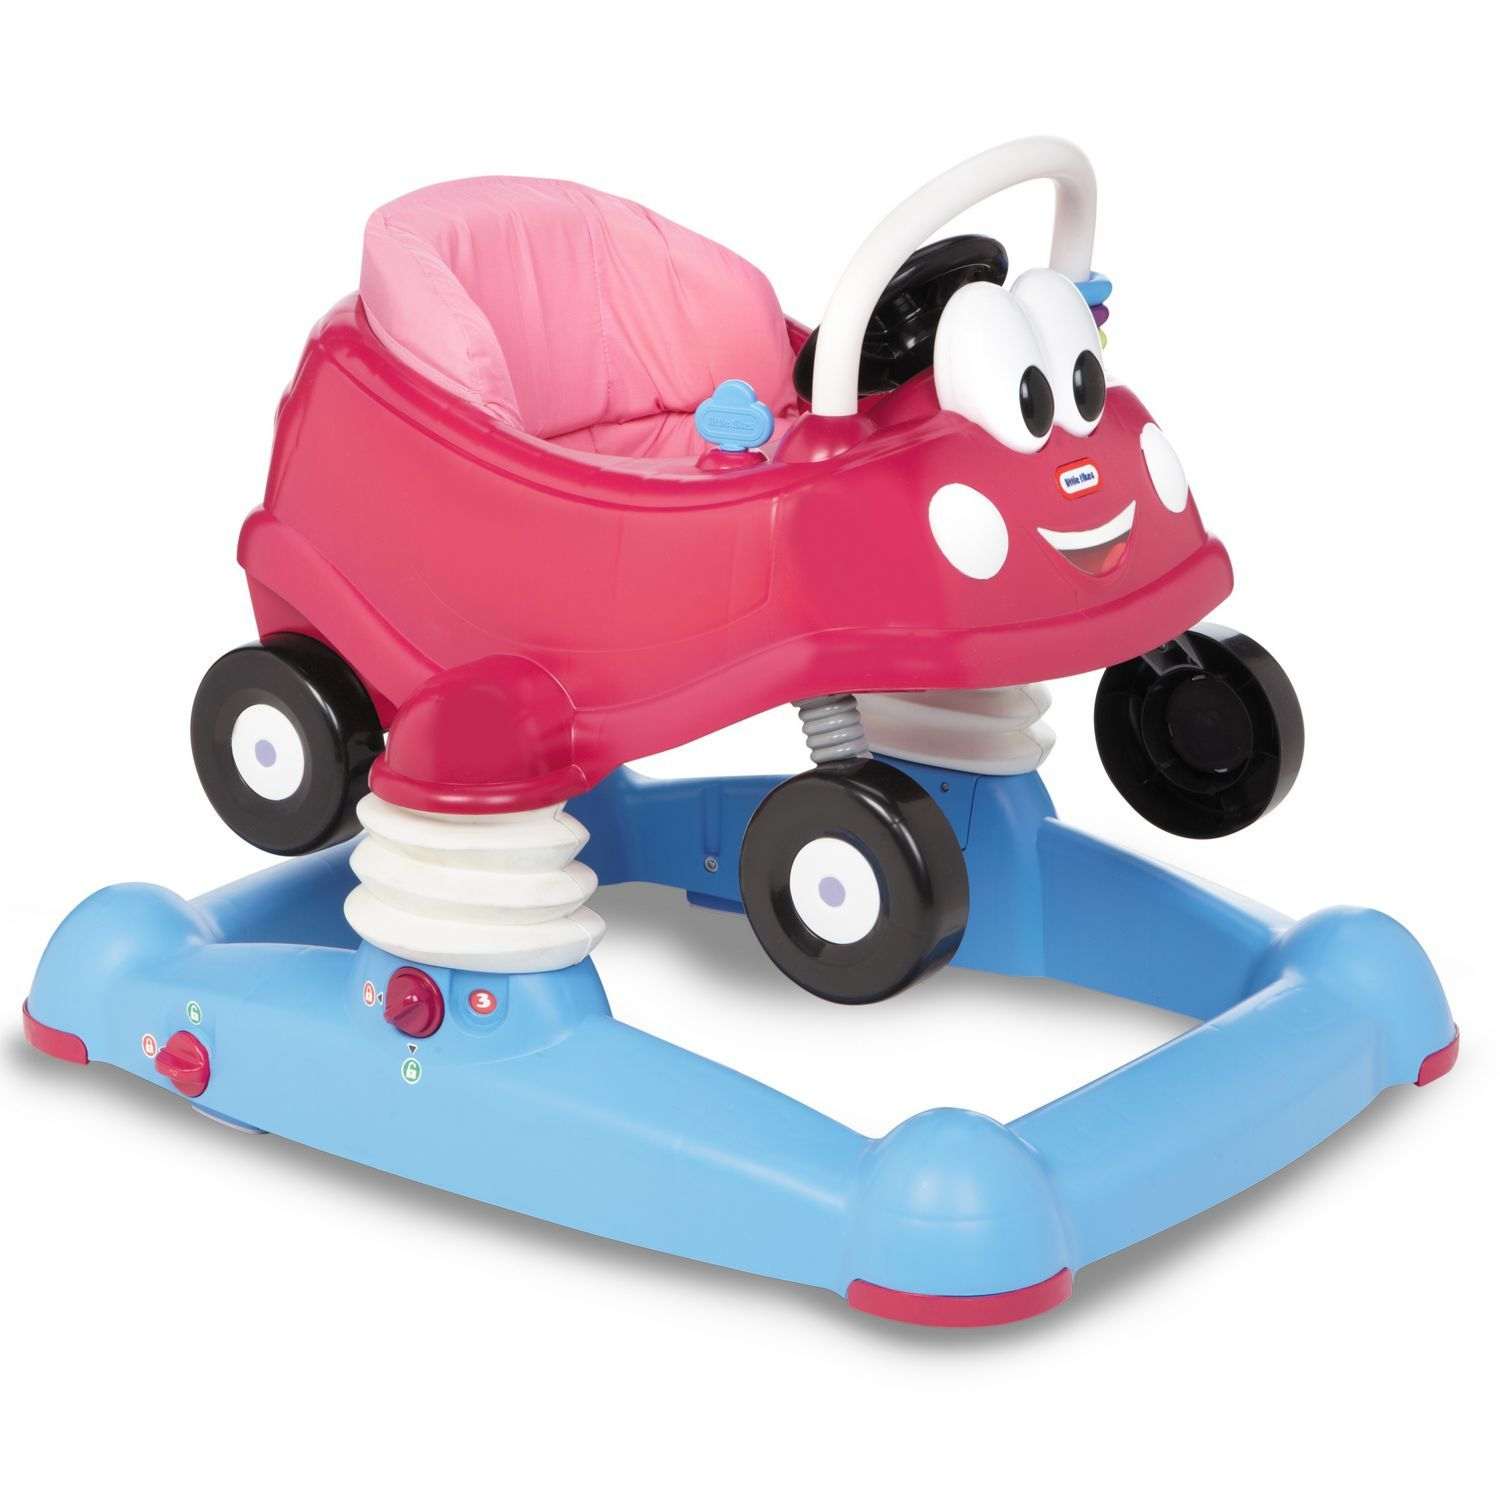 Princess Cozy Coupe 3in1 Mobile Entertainer by Little